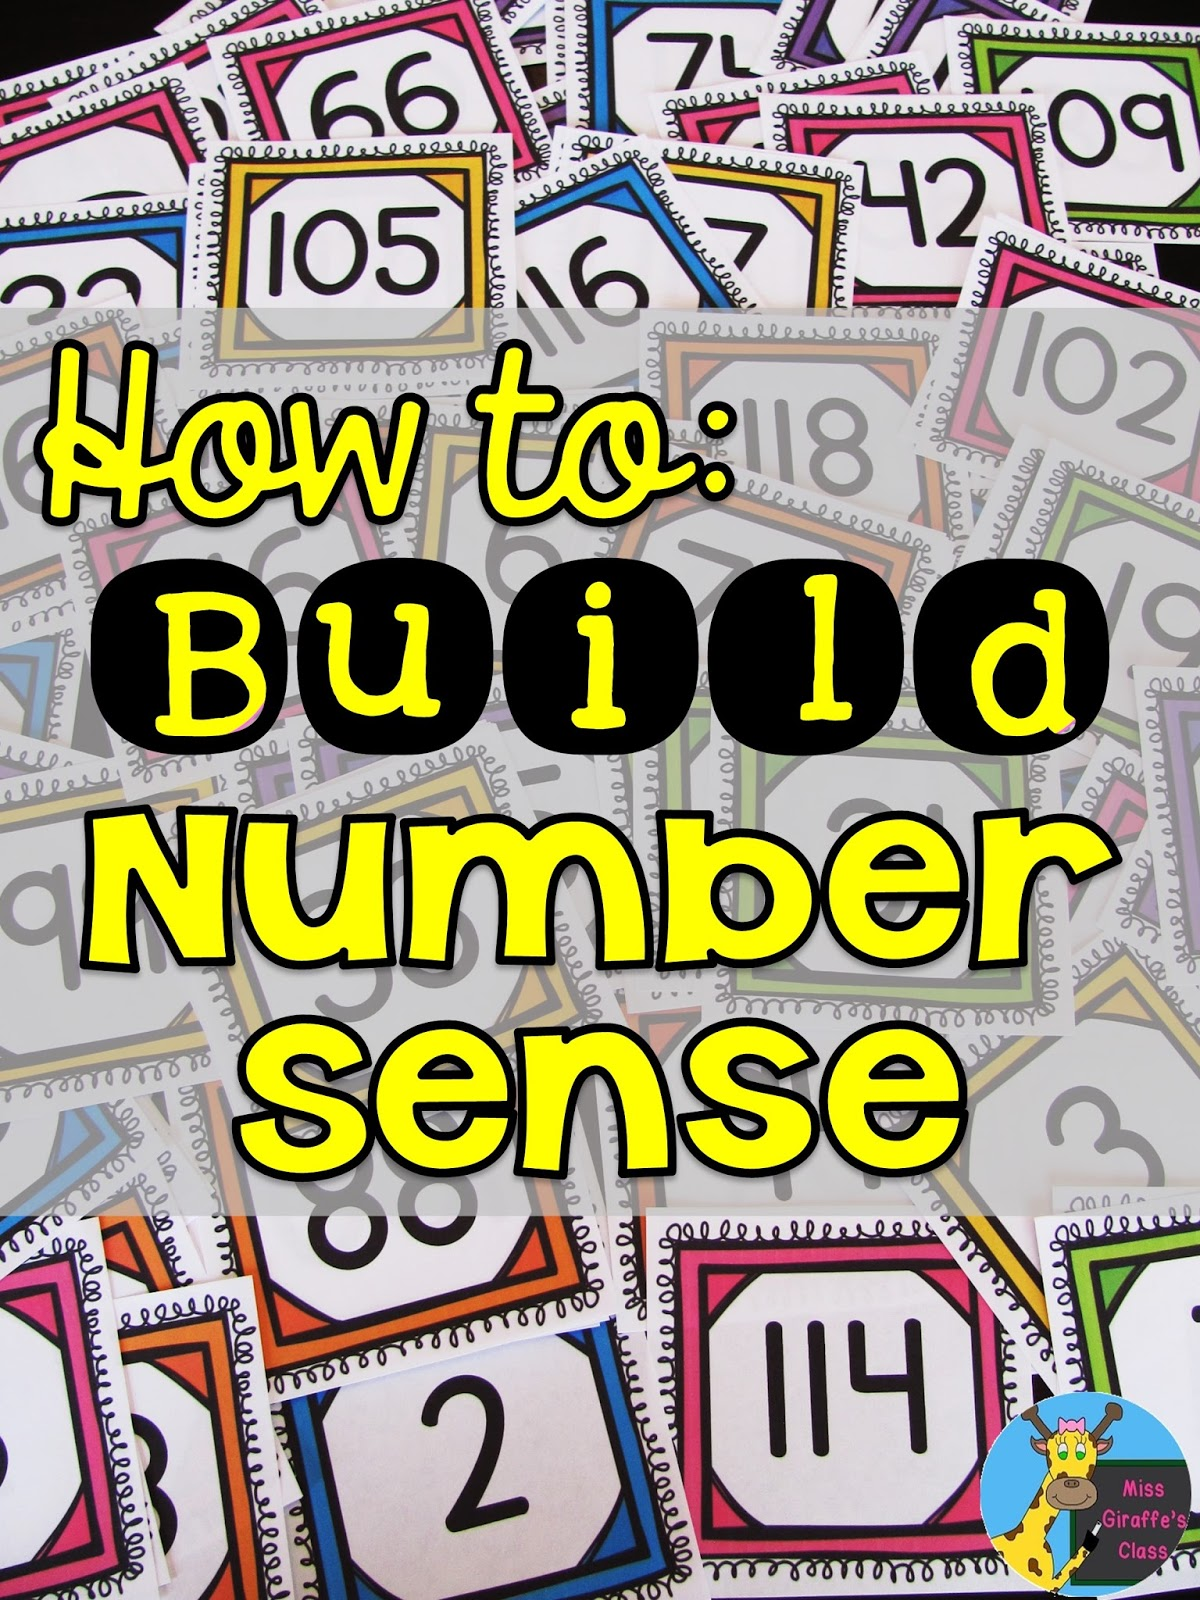 hight resolution of Miss Giraffe's Class: Building Number Sense in First Grade